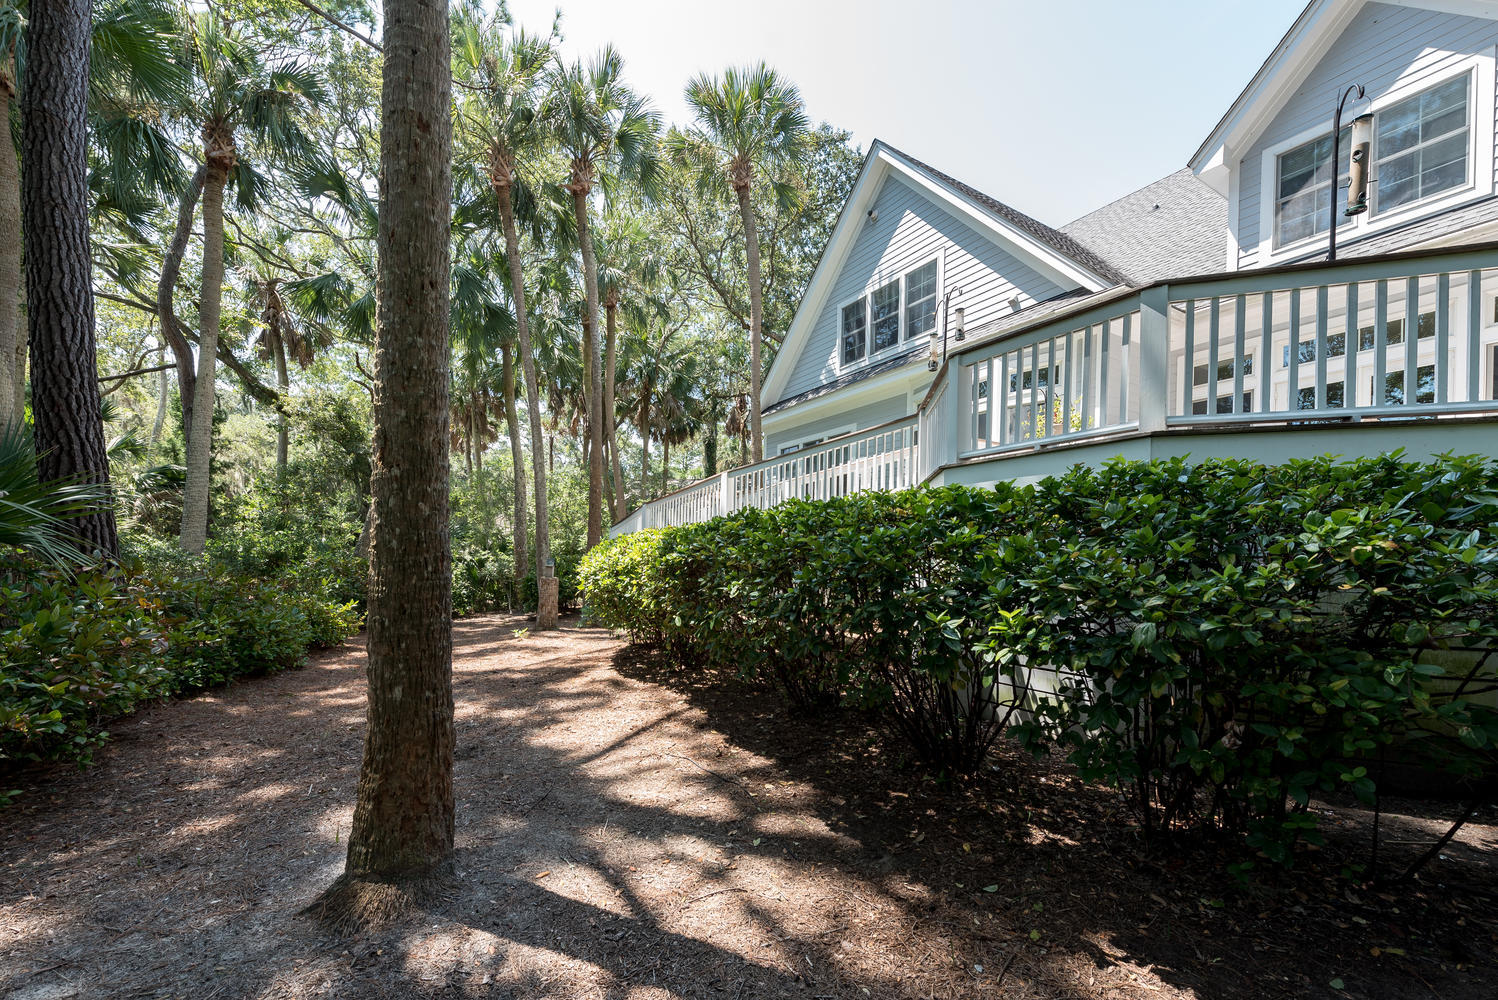 Seabrook Island Homes For Sale - 2507 The Bent Twig, Seabrook Island, SC - 17